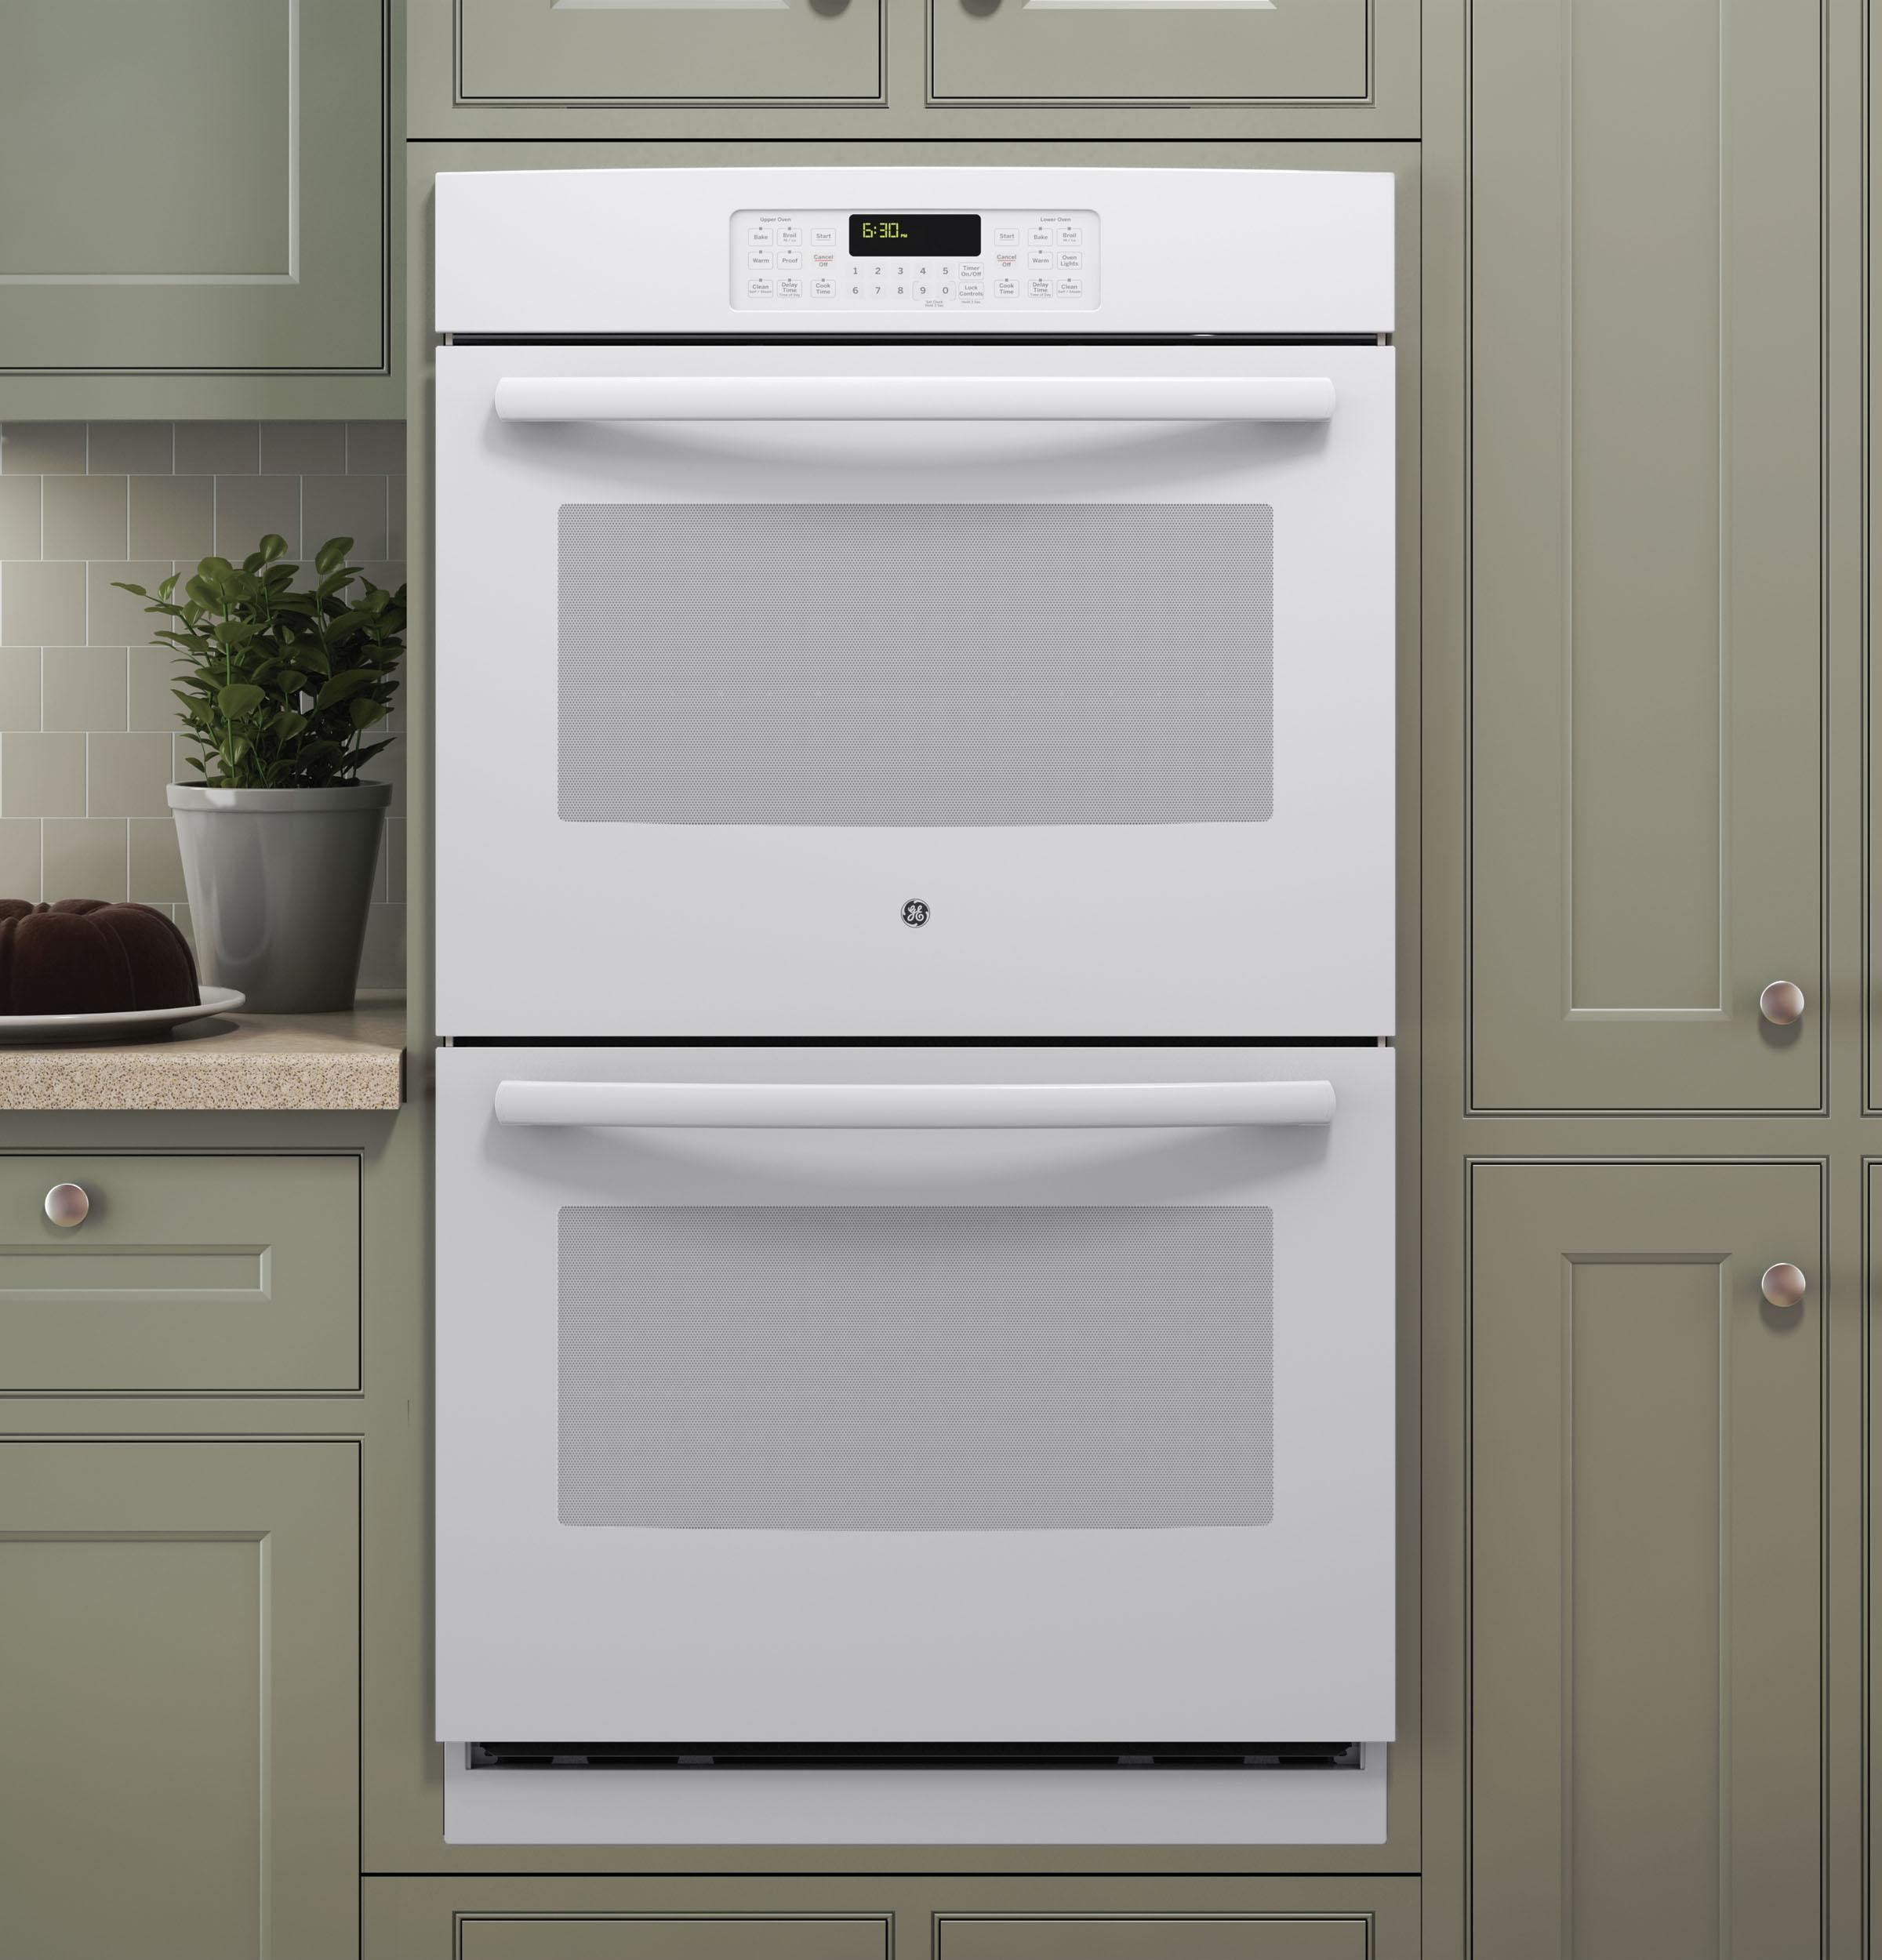 JT3500DFWW in White by GE Appliances in Hempstead TX GE 30